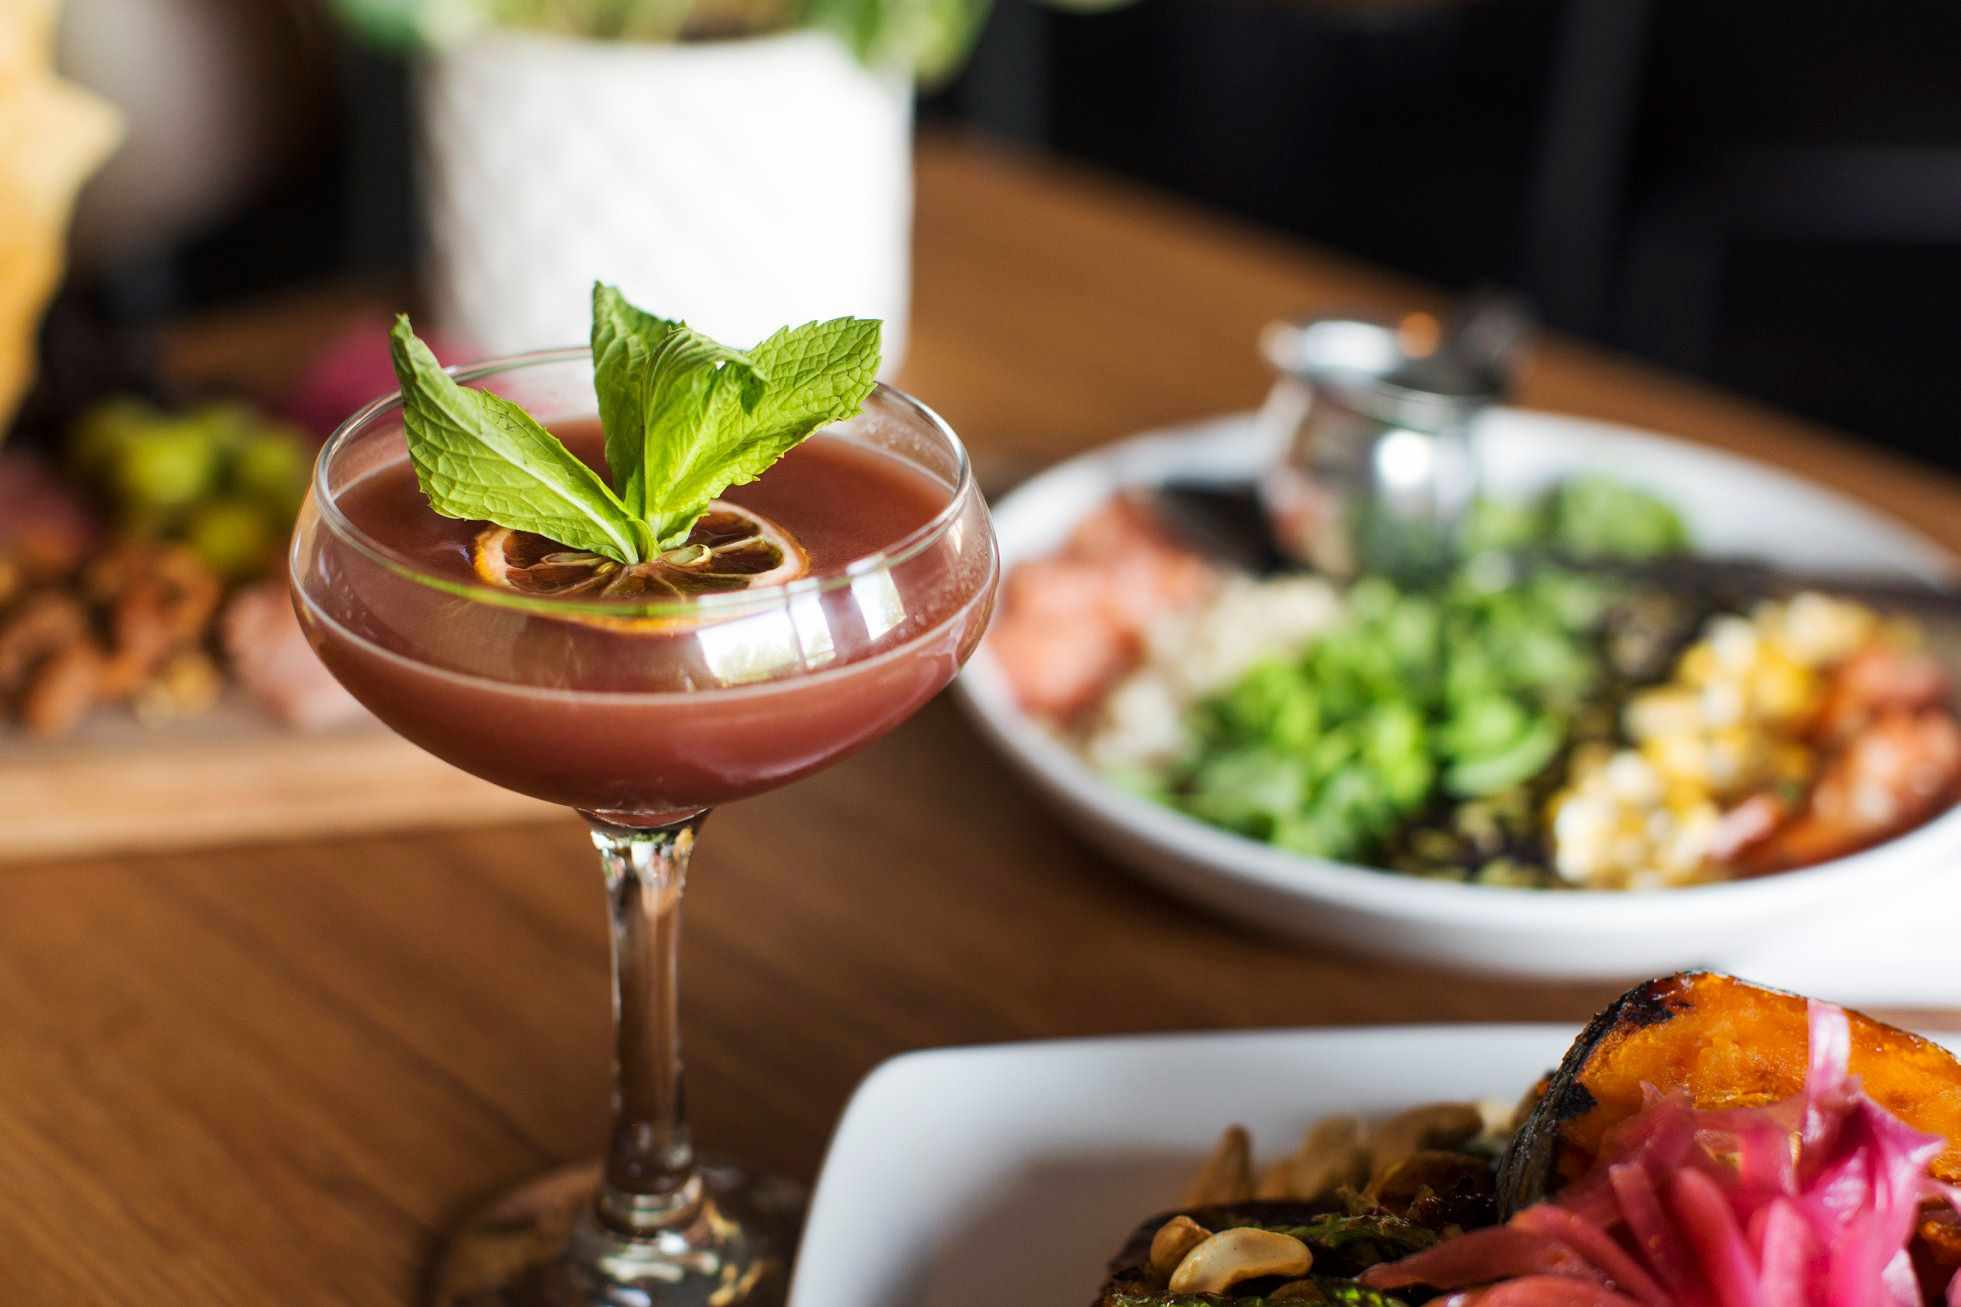 Food and cocktails at The Gladly